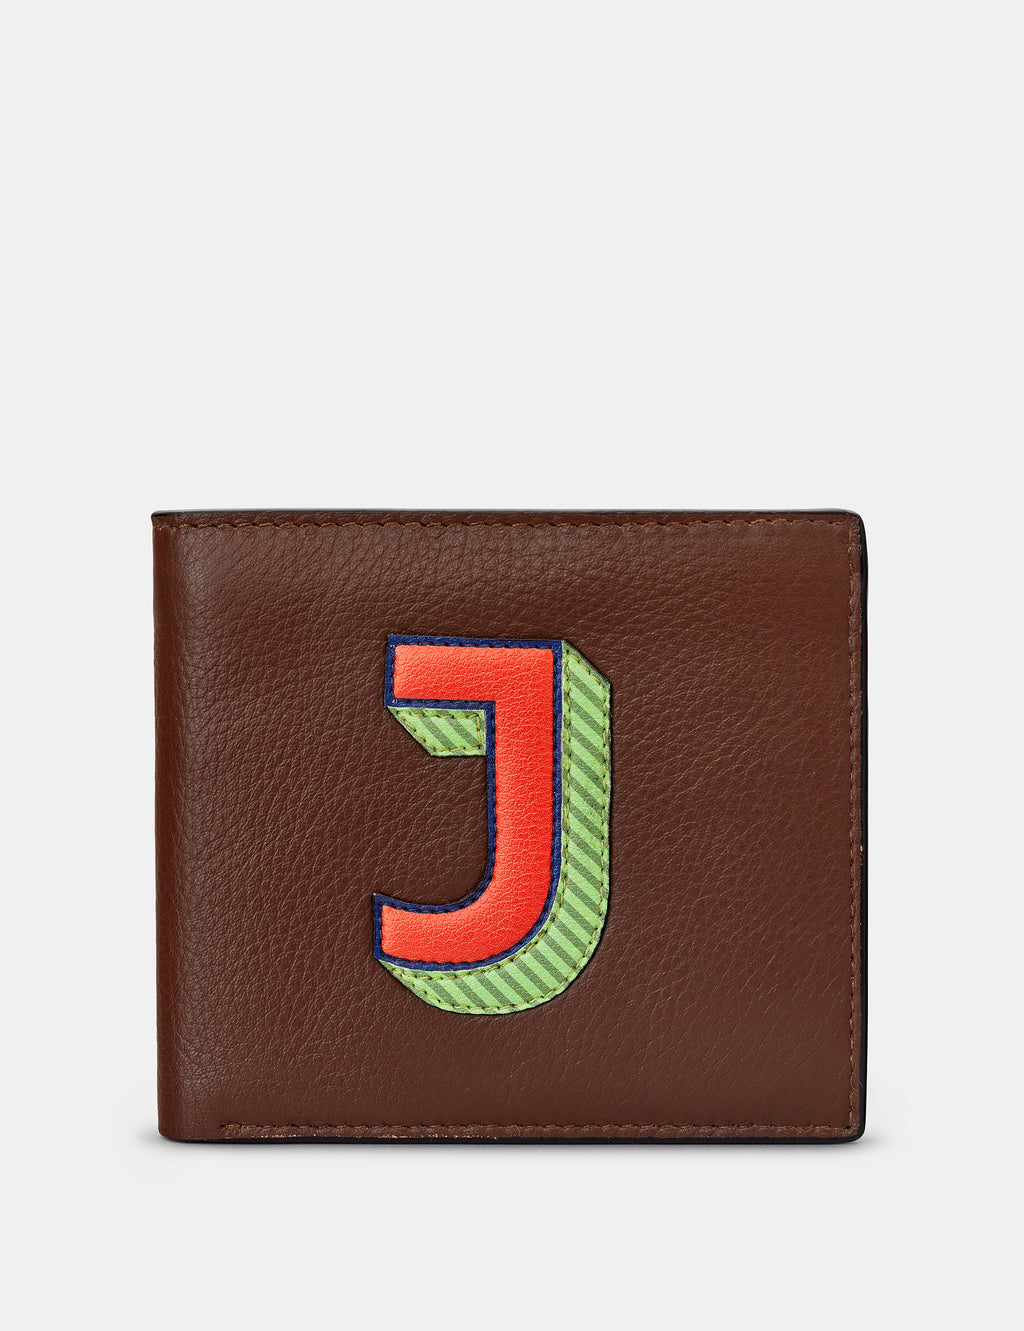 J Initial Brown Leather Wallet